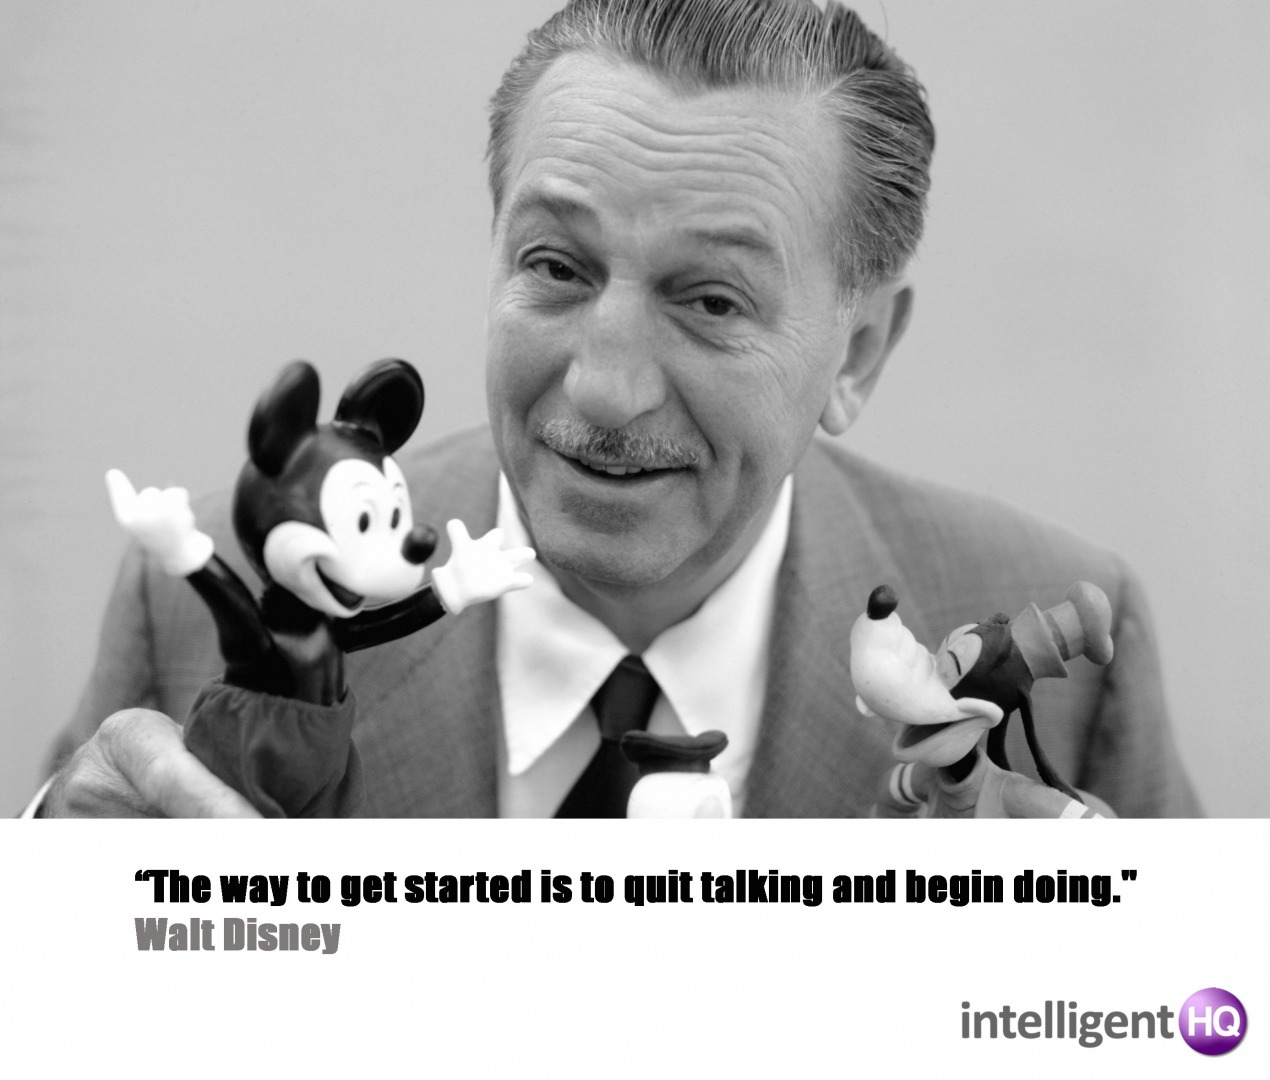 Quote by Walt Disney